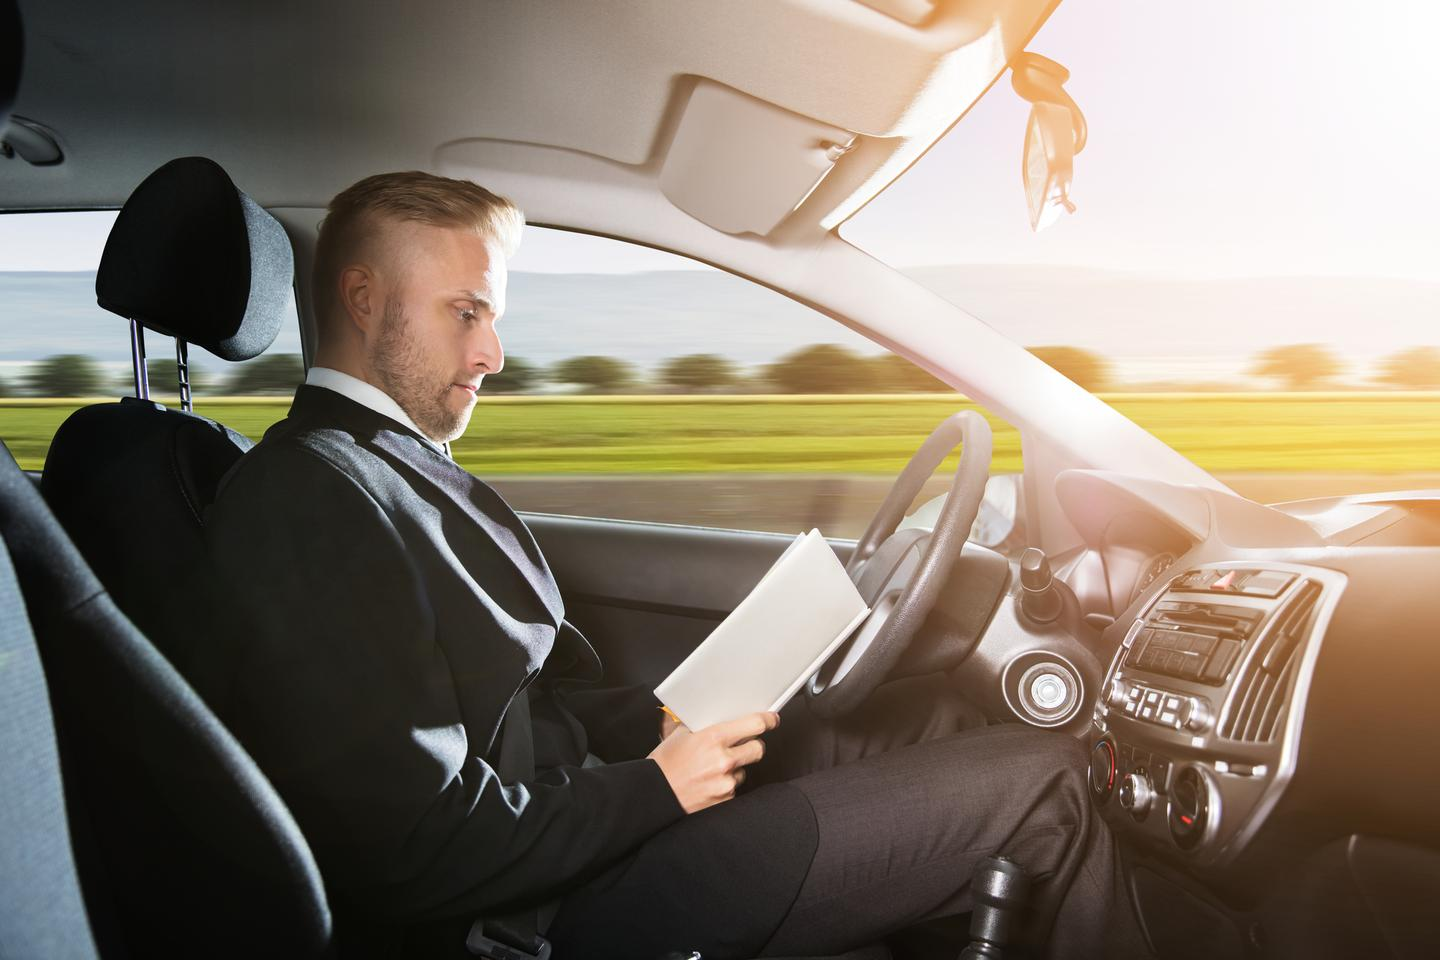 The UK has taken its first cautious steps to legalize self-driving vehicles – hands off, eyes off – under certain conditions